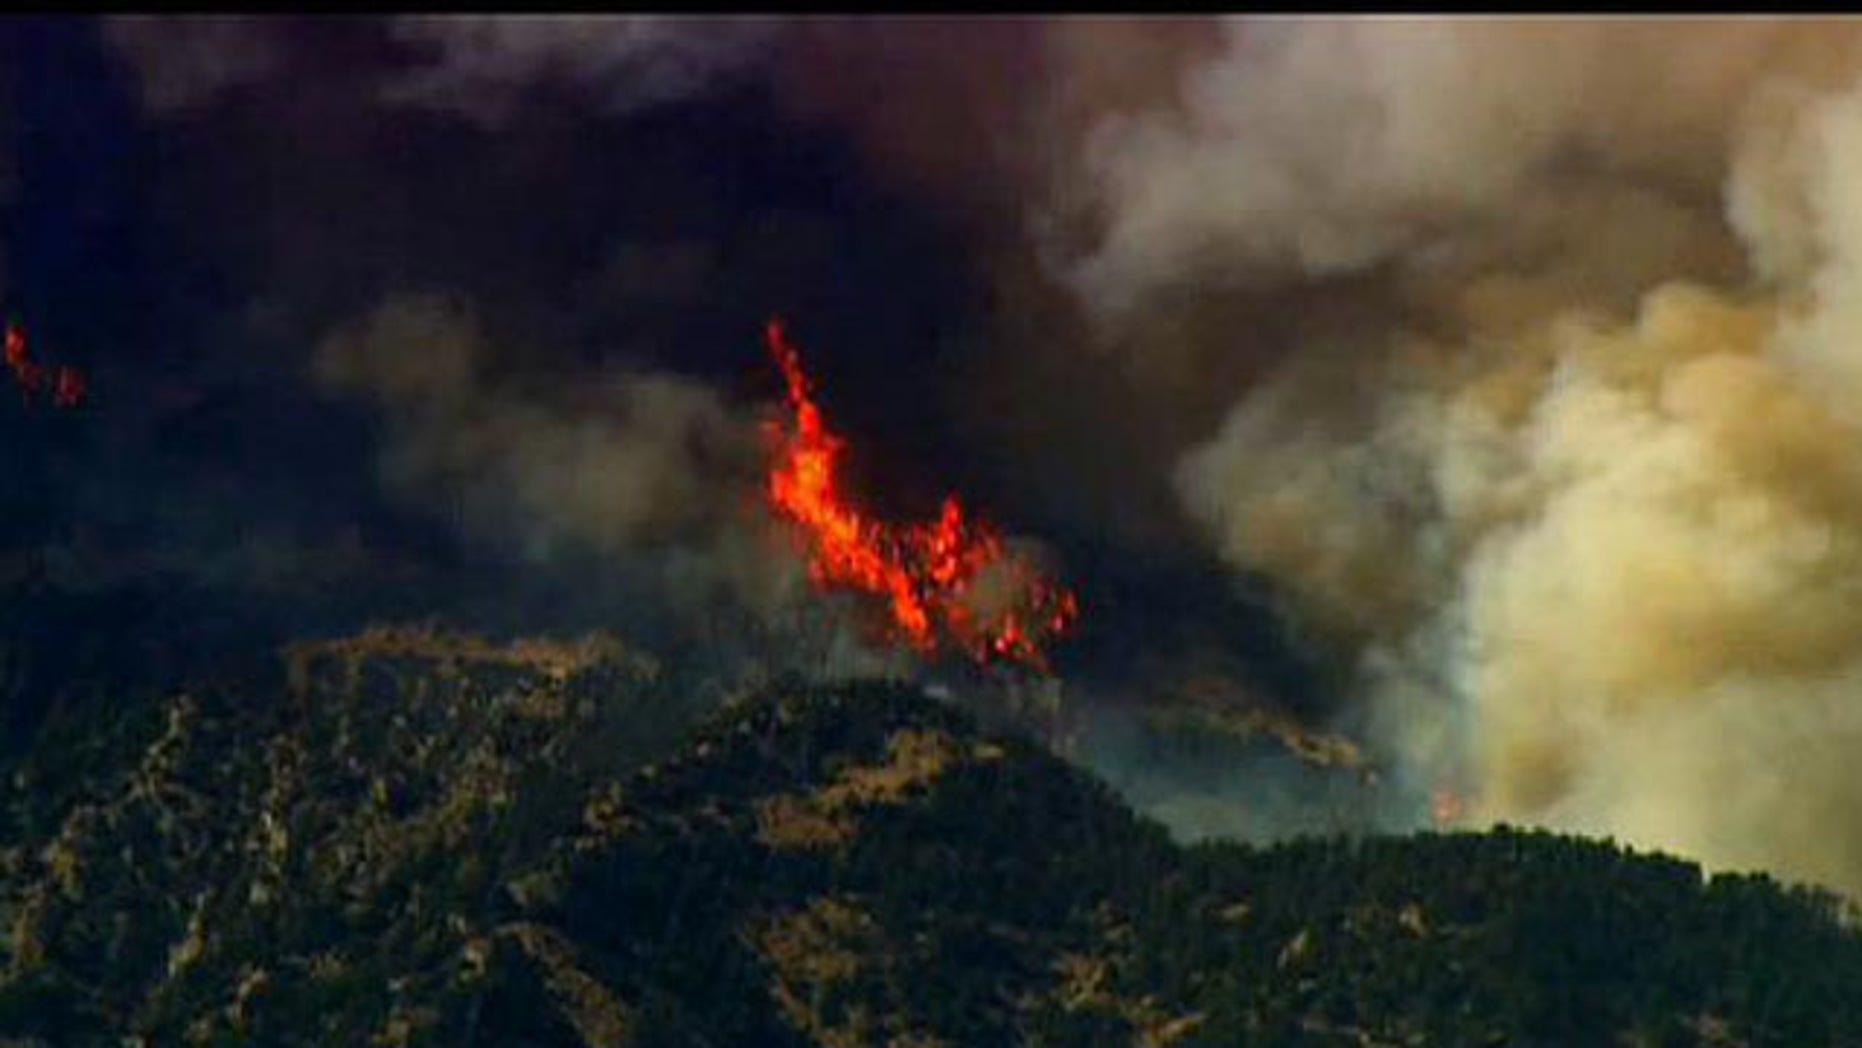 A wind-whipped wildfire burned through 11 homes outside an Oregon college town as hot, dry weather -- with temperatures near 100 degrees -- also helped fires spread in Idaho and Southern California, where homes were evacuated (FNC).